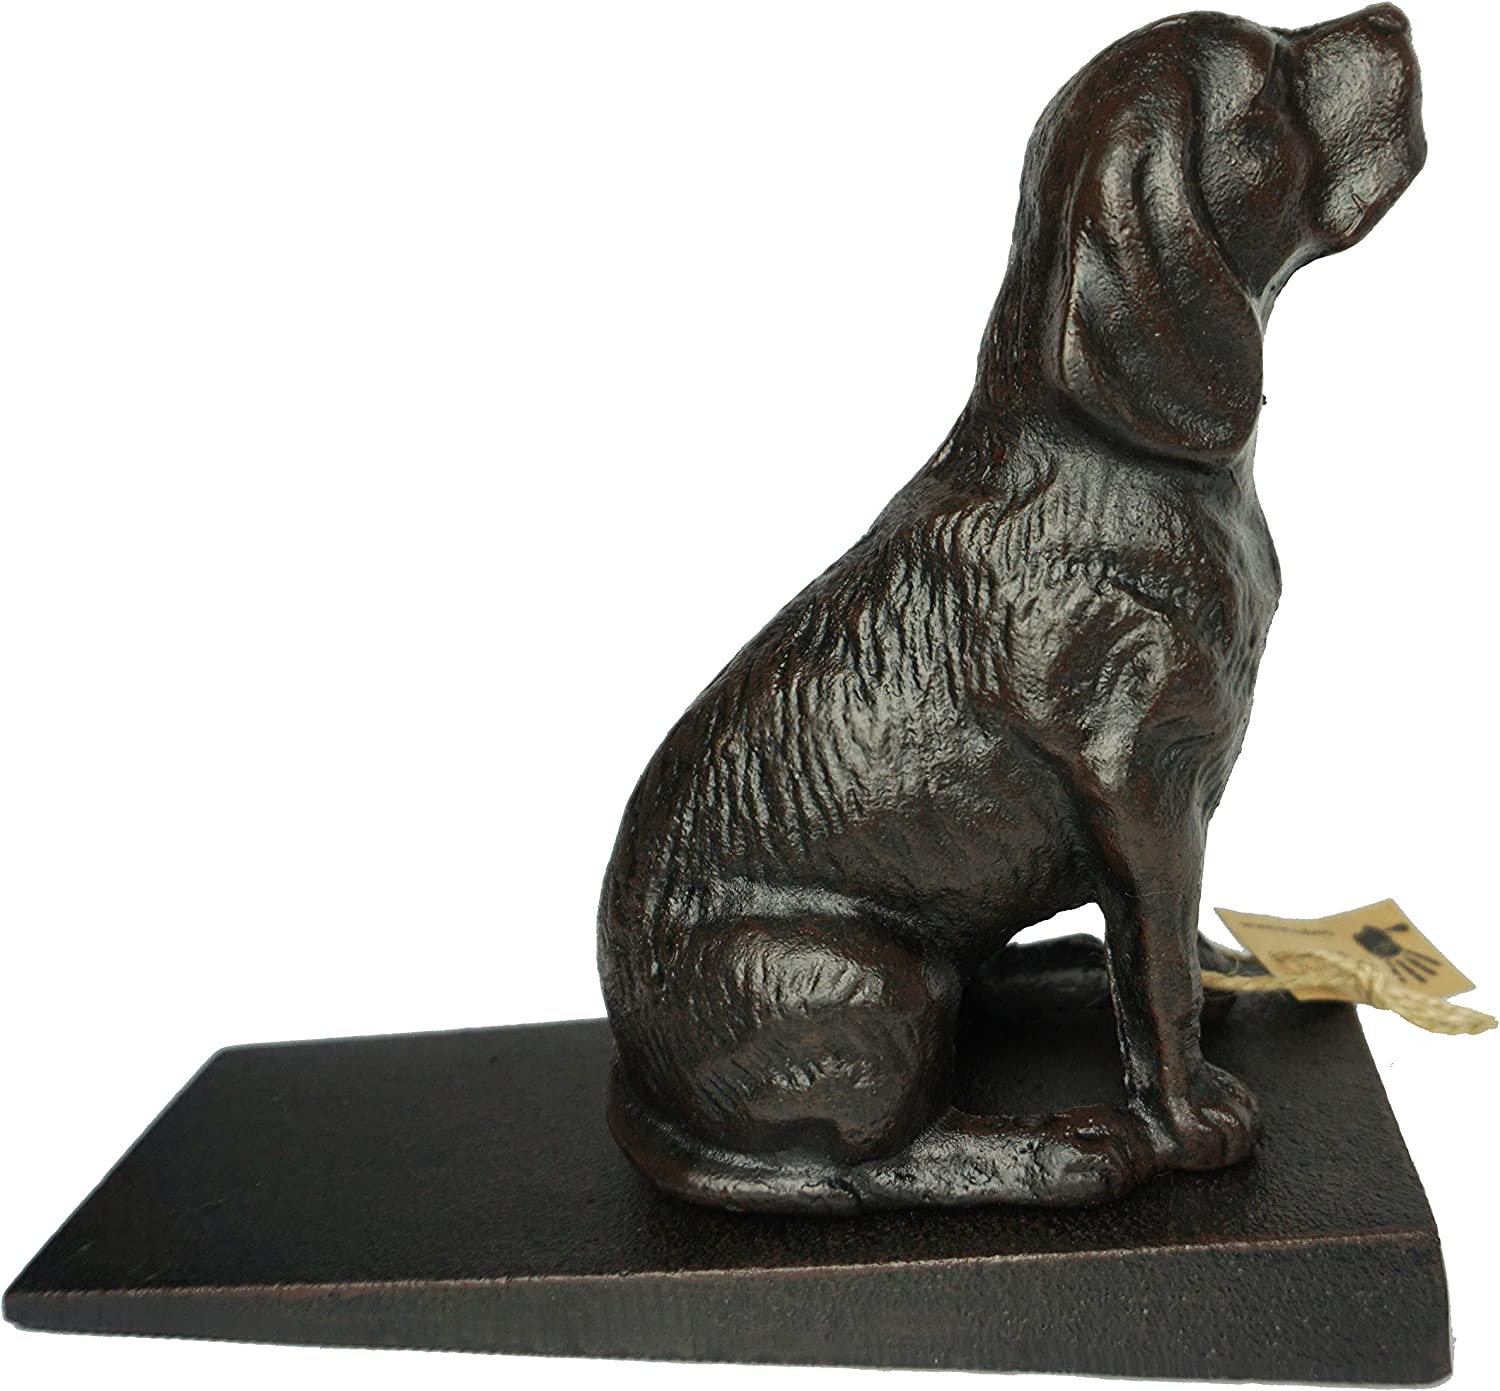 "Lulu Decor Cast Iron Heavy Duty 6 lbs 9 oz Dog Door Stopper with Base, Measures 7"" H, 3.5"" W and 8.25"" L, Cute, Good Looking Dog"